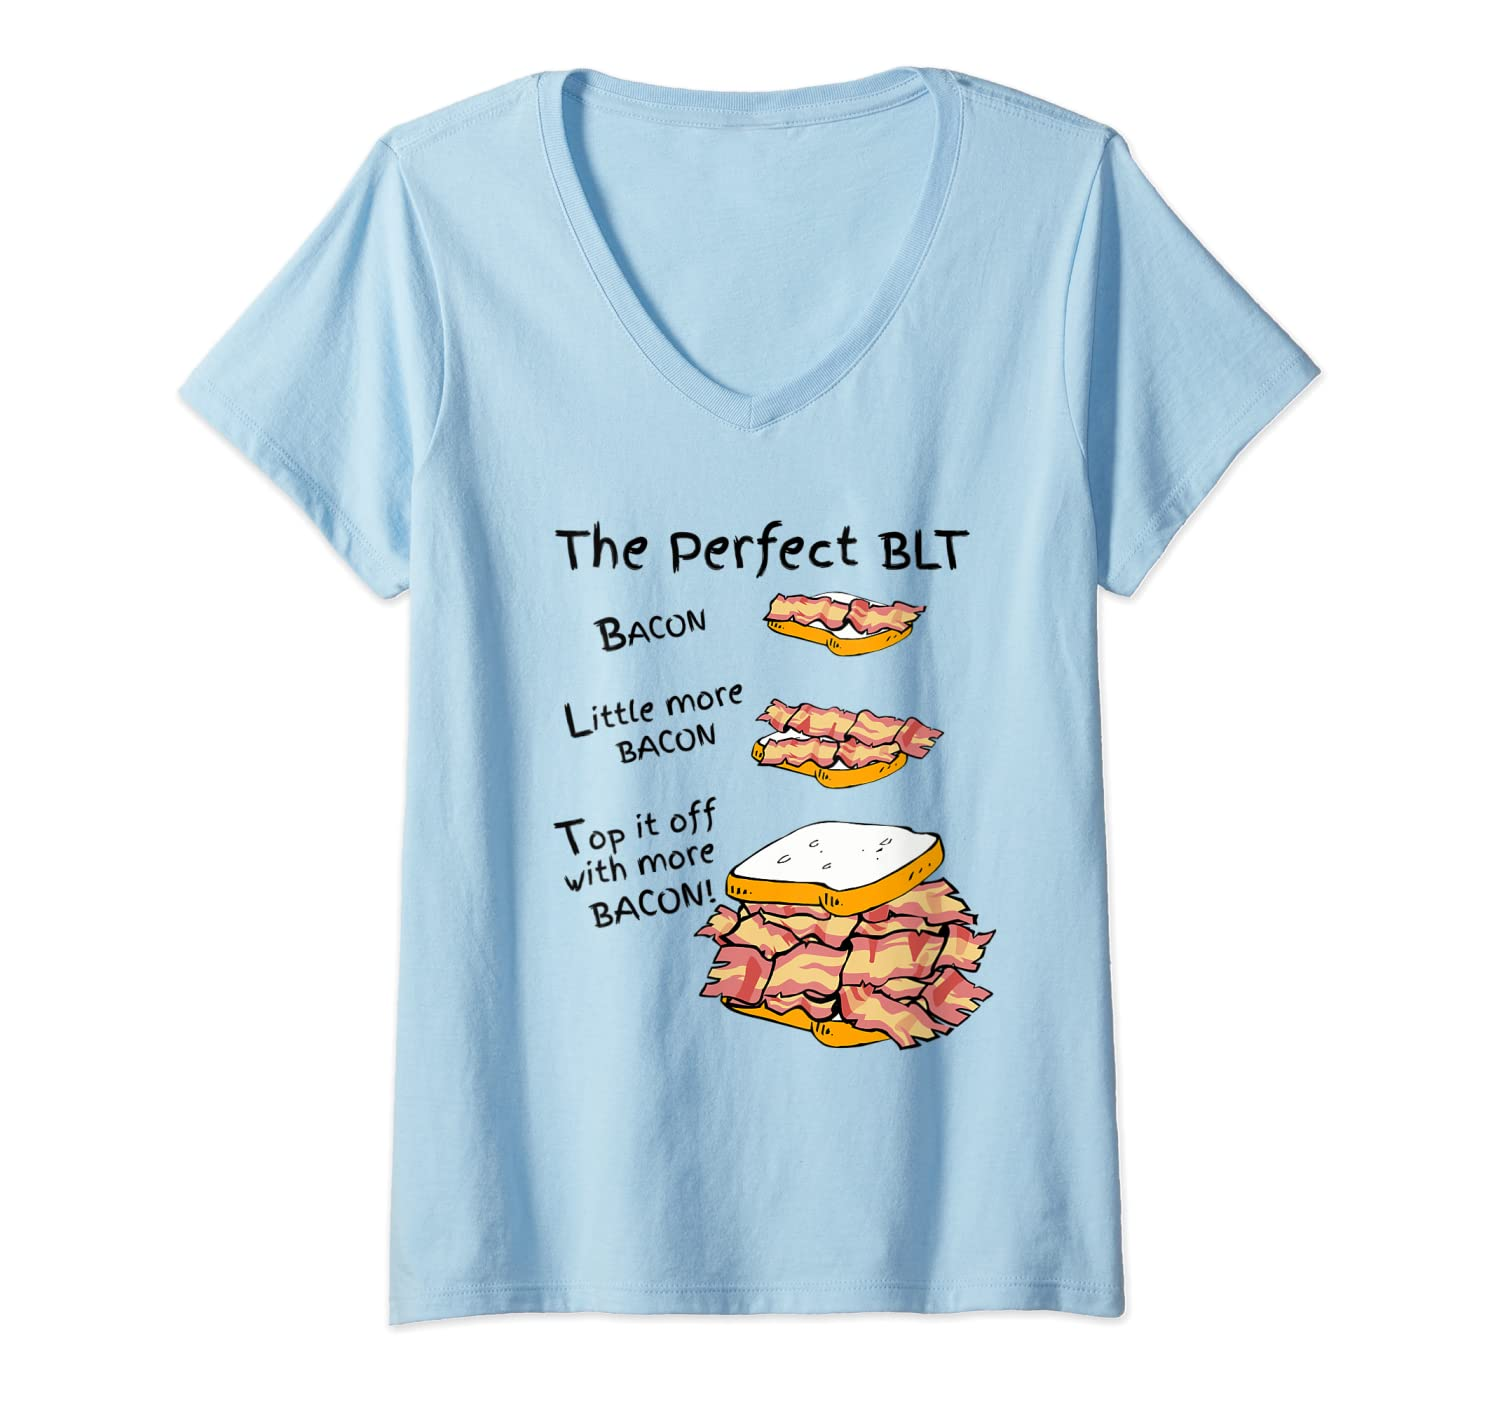 How To Make The Perfect Blt Bacon Sandwich T Shirt